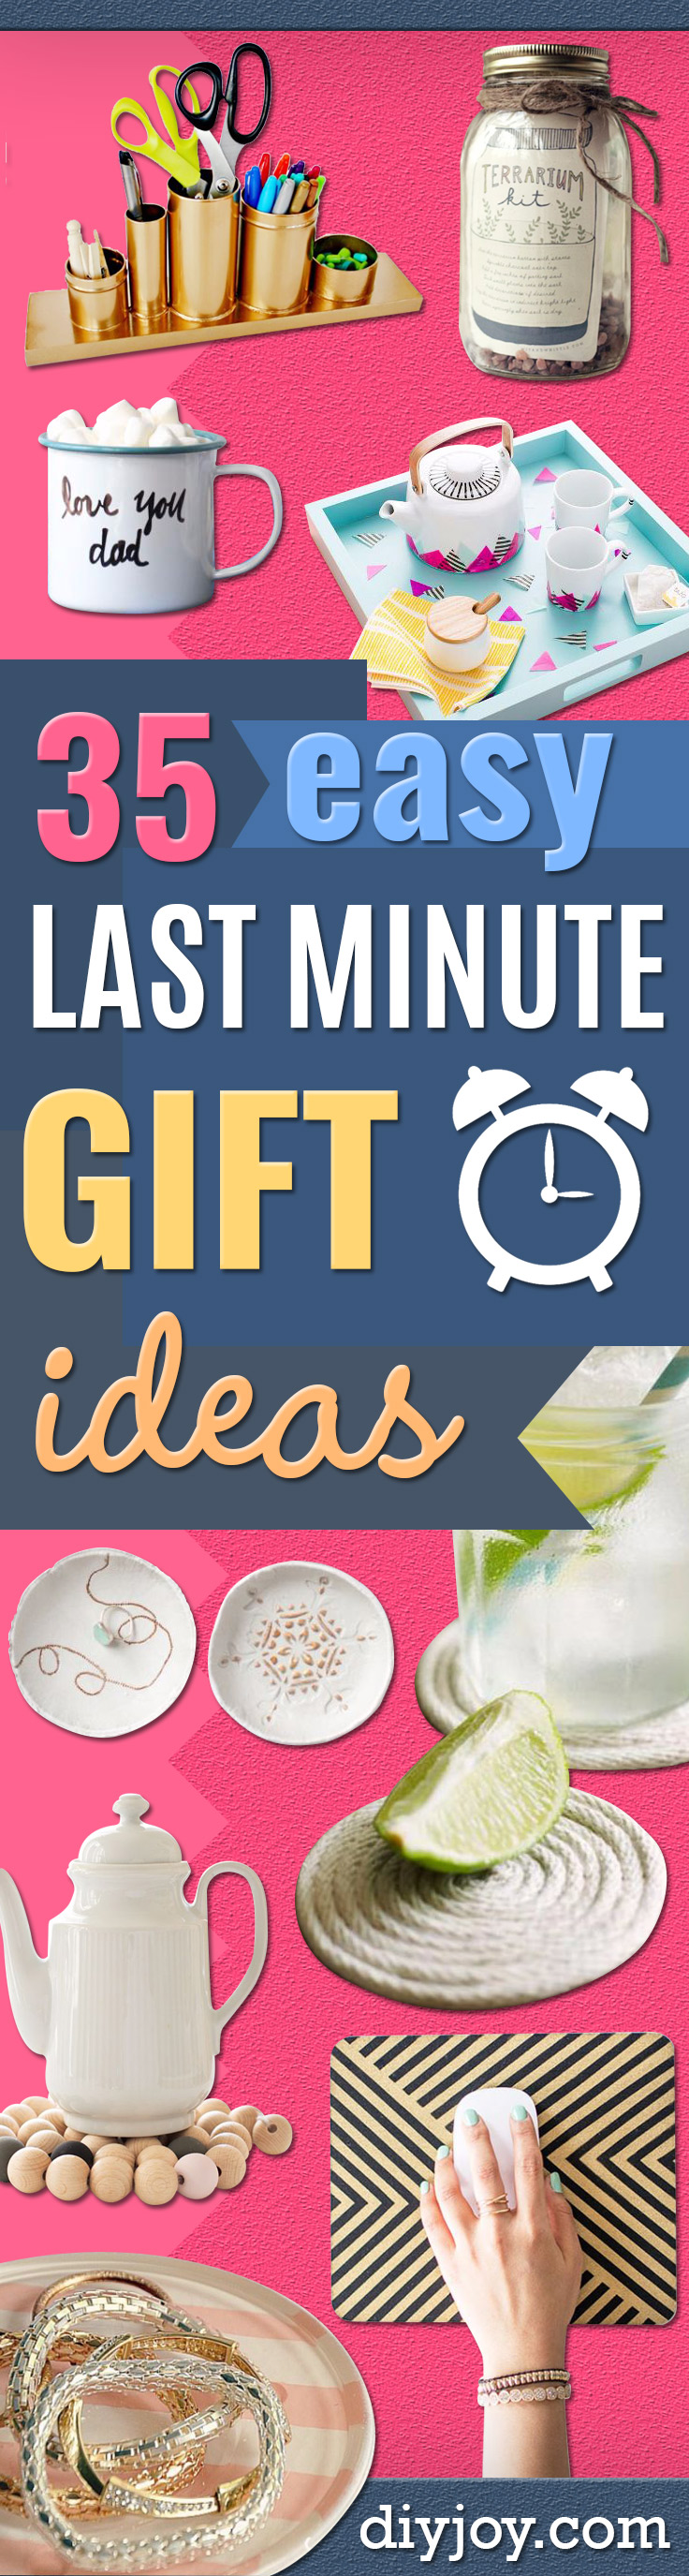 35 Awesome Last Minute Diy Gift Ideas